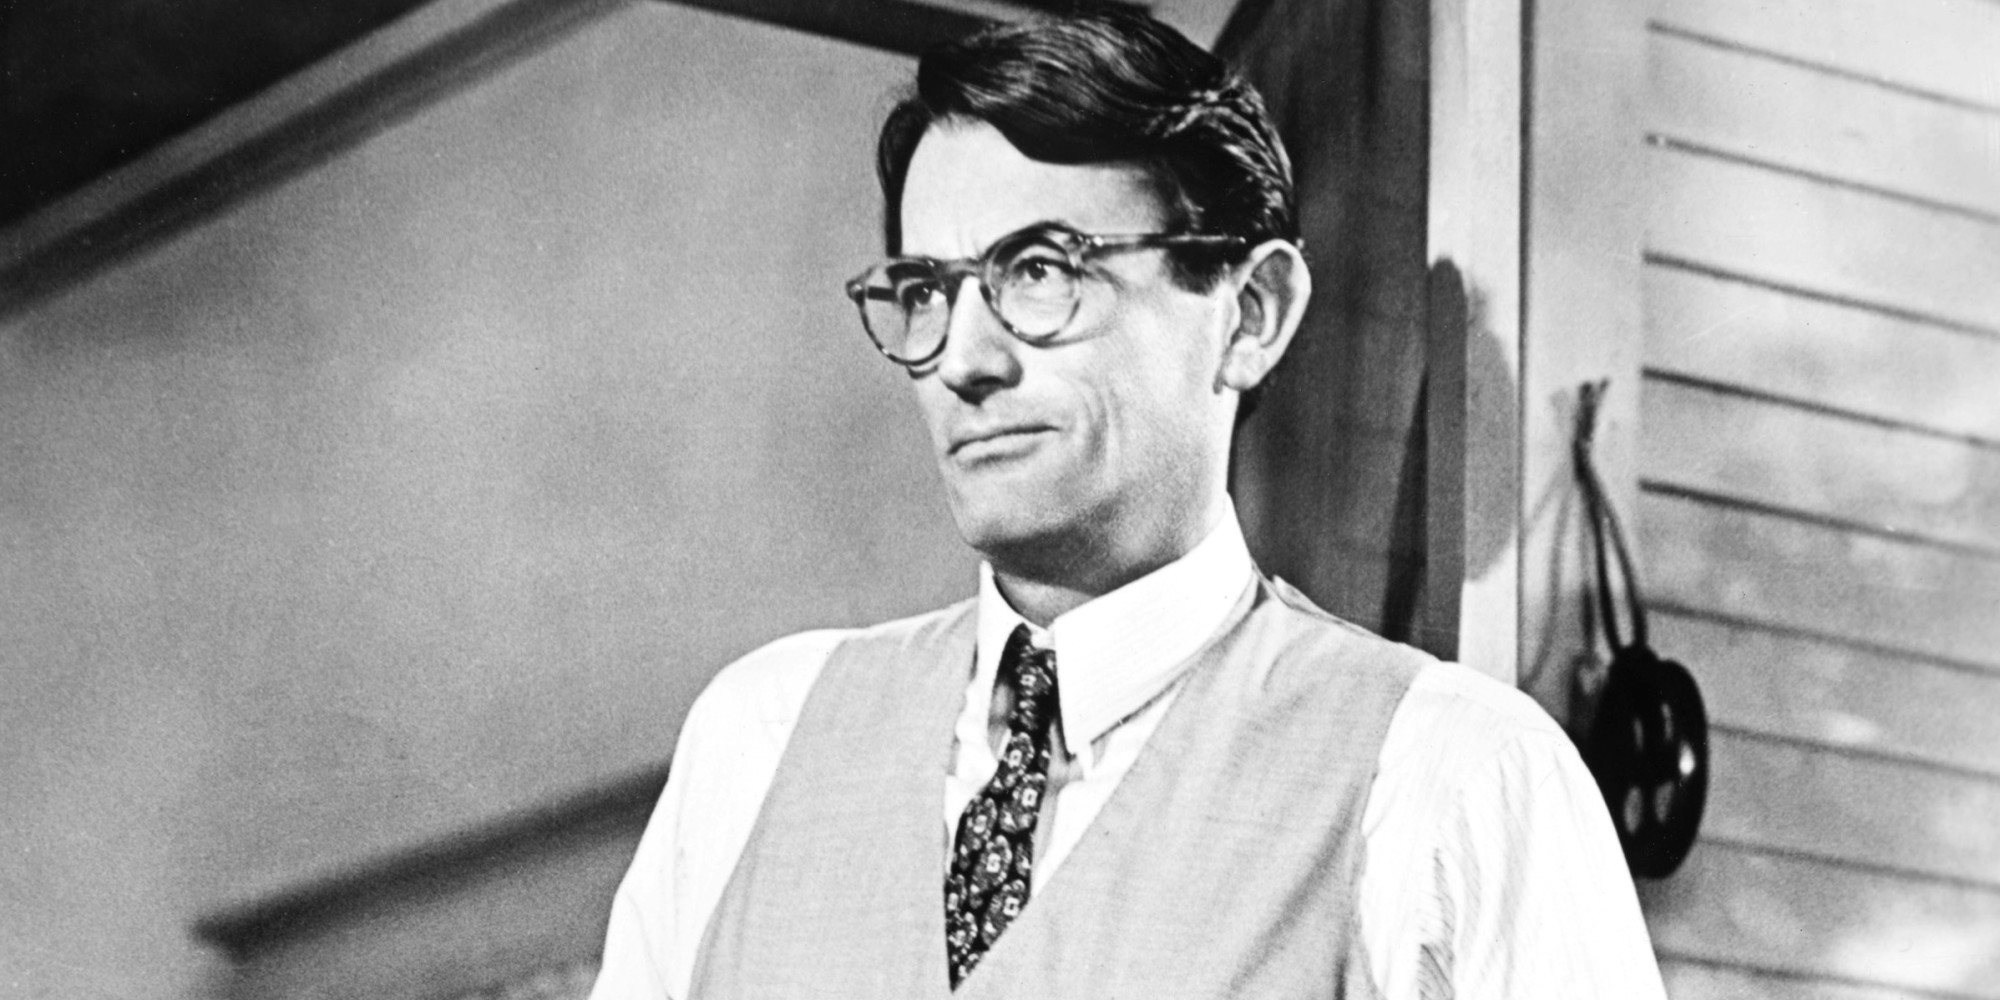 atticus finch good father essay Atticus finch essays: over 180,000 atticus finch essays, atticus finch term papers, atticus finch research paper, book reports 184 990 essays, term and research papers available for unlimited access.